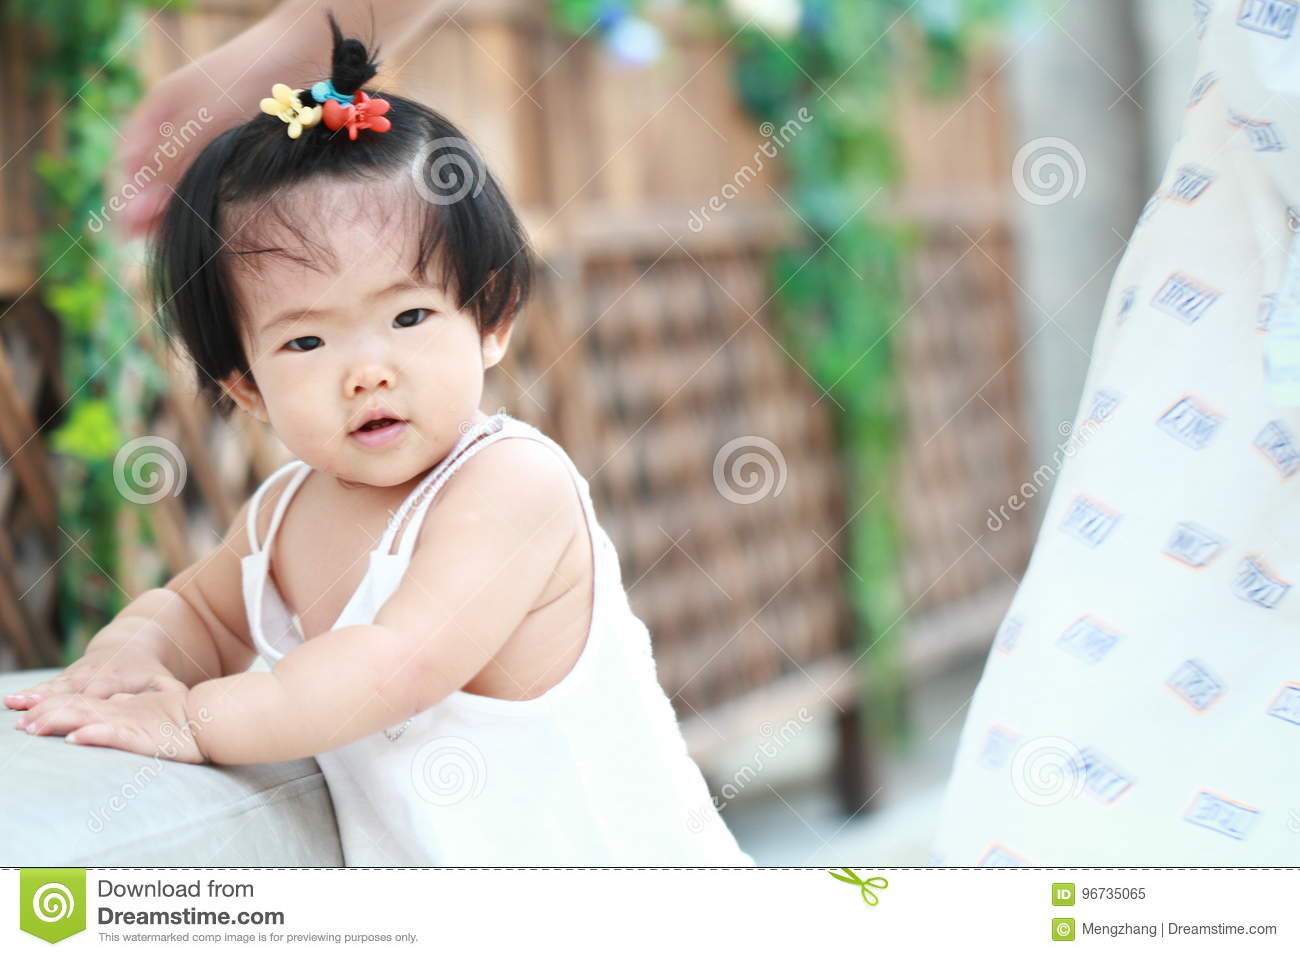 cebe94151 Cute Chinese Baby Girl Learn How To Walk Stock Image - Image of cute ...